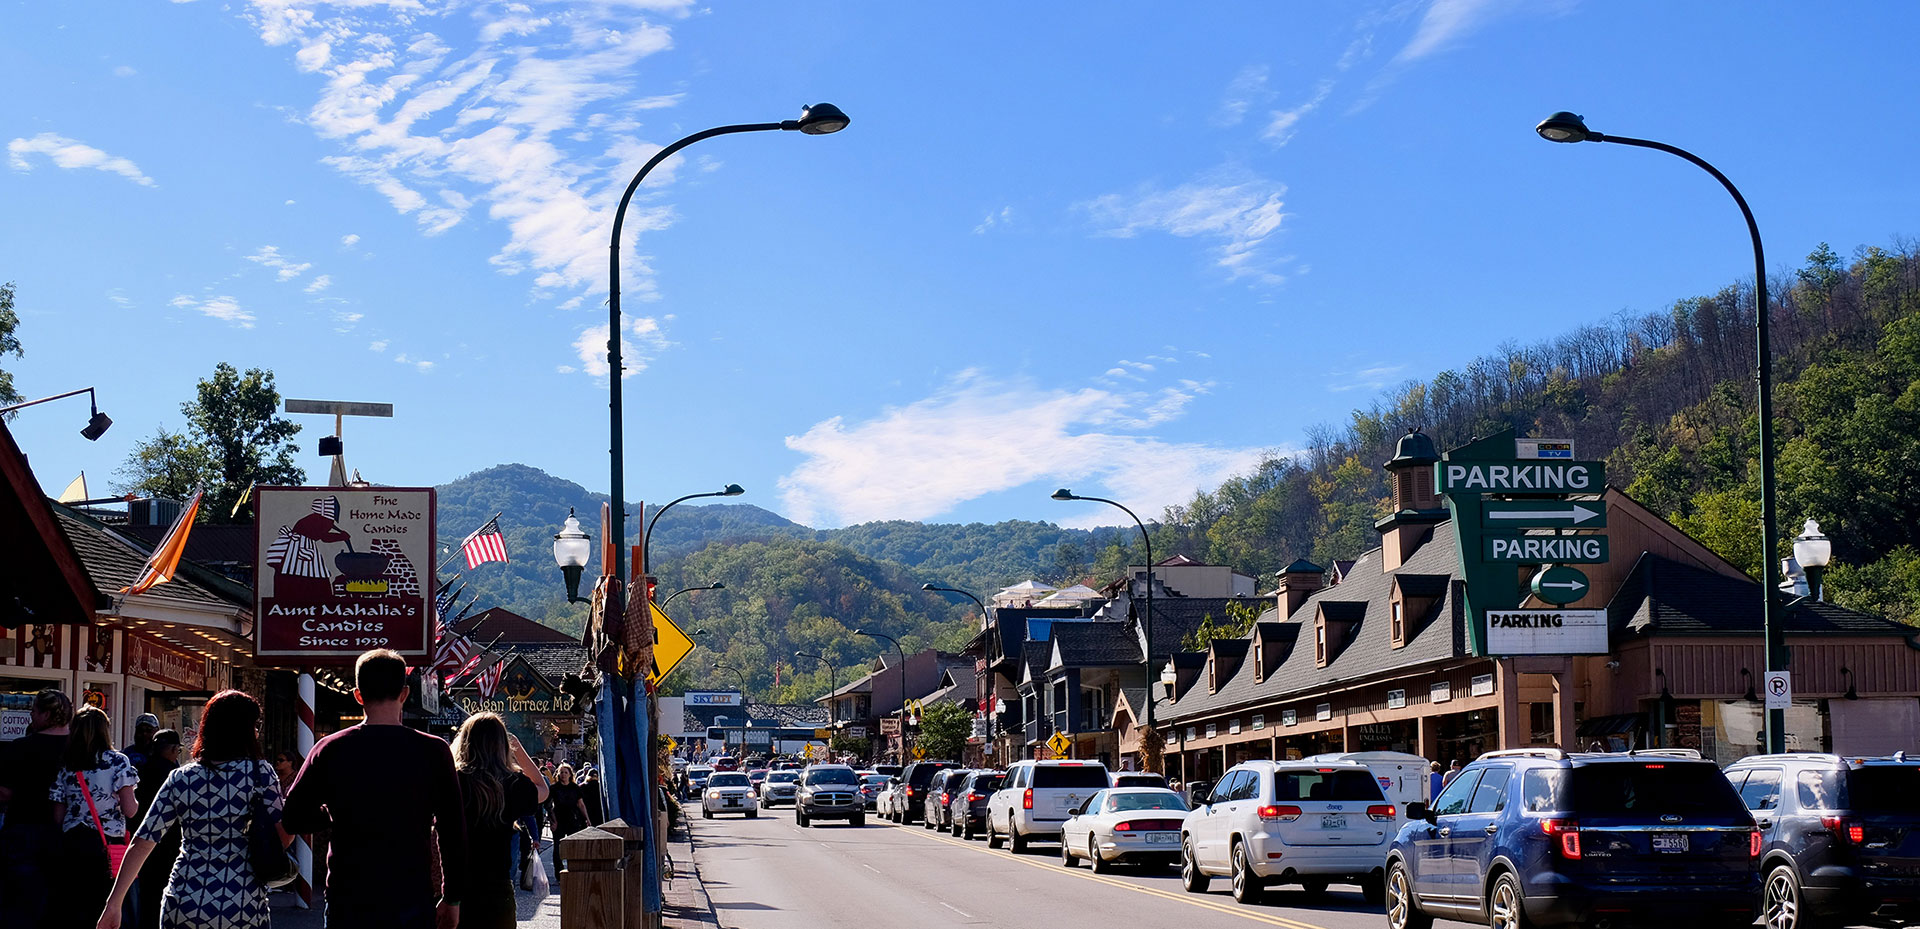 Downtown Gatlinburg | Gatlinburg Attractions | Things To Do In Gatlinburg, TN